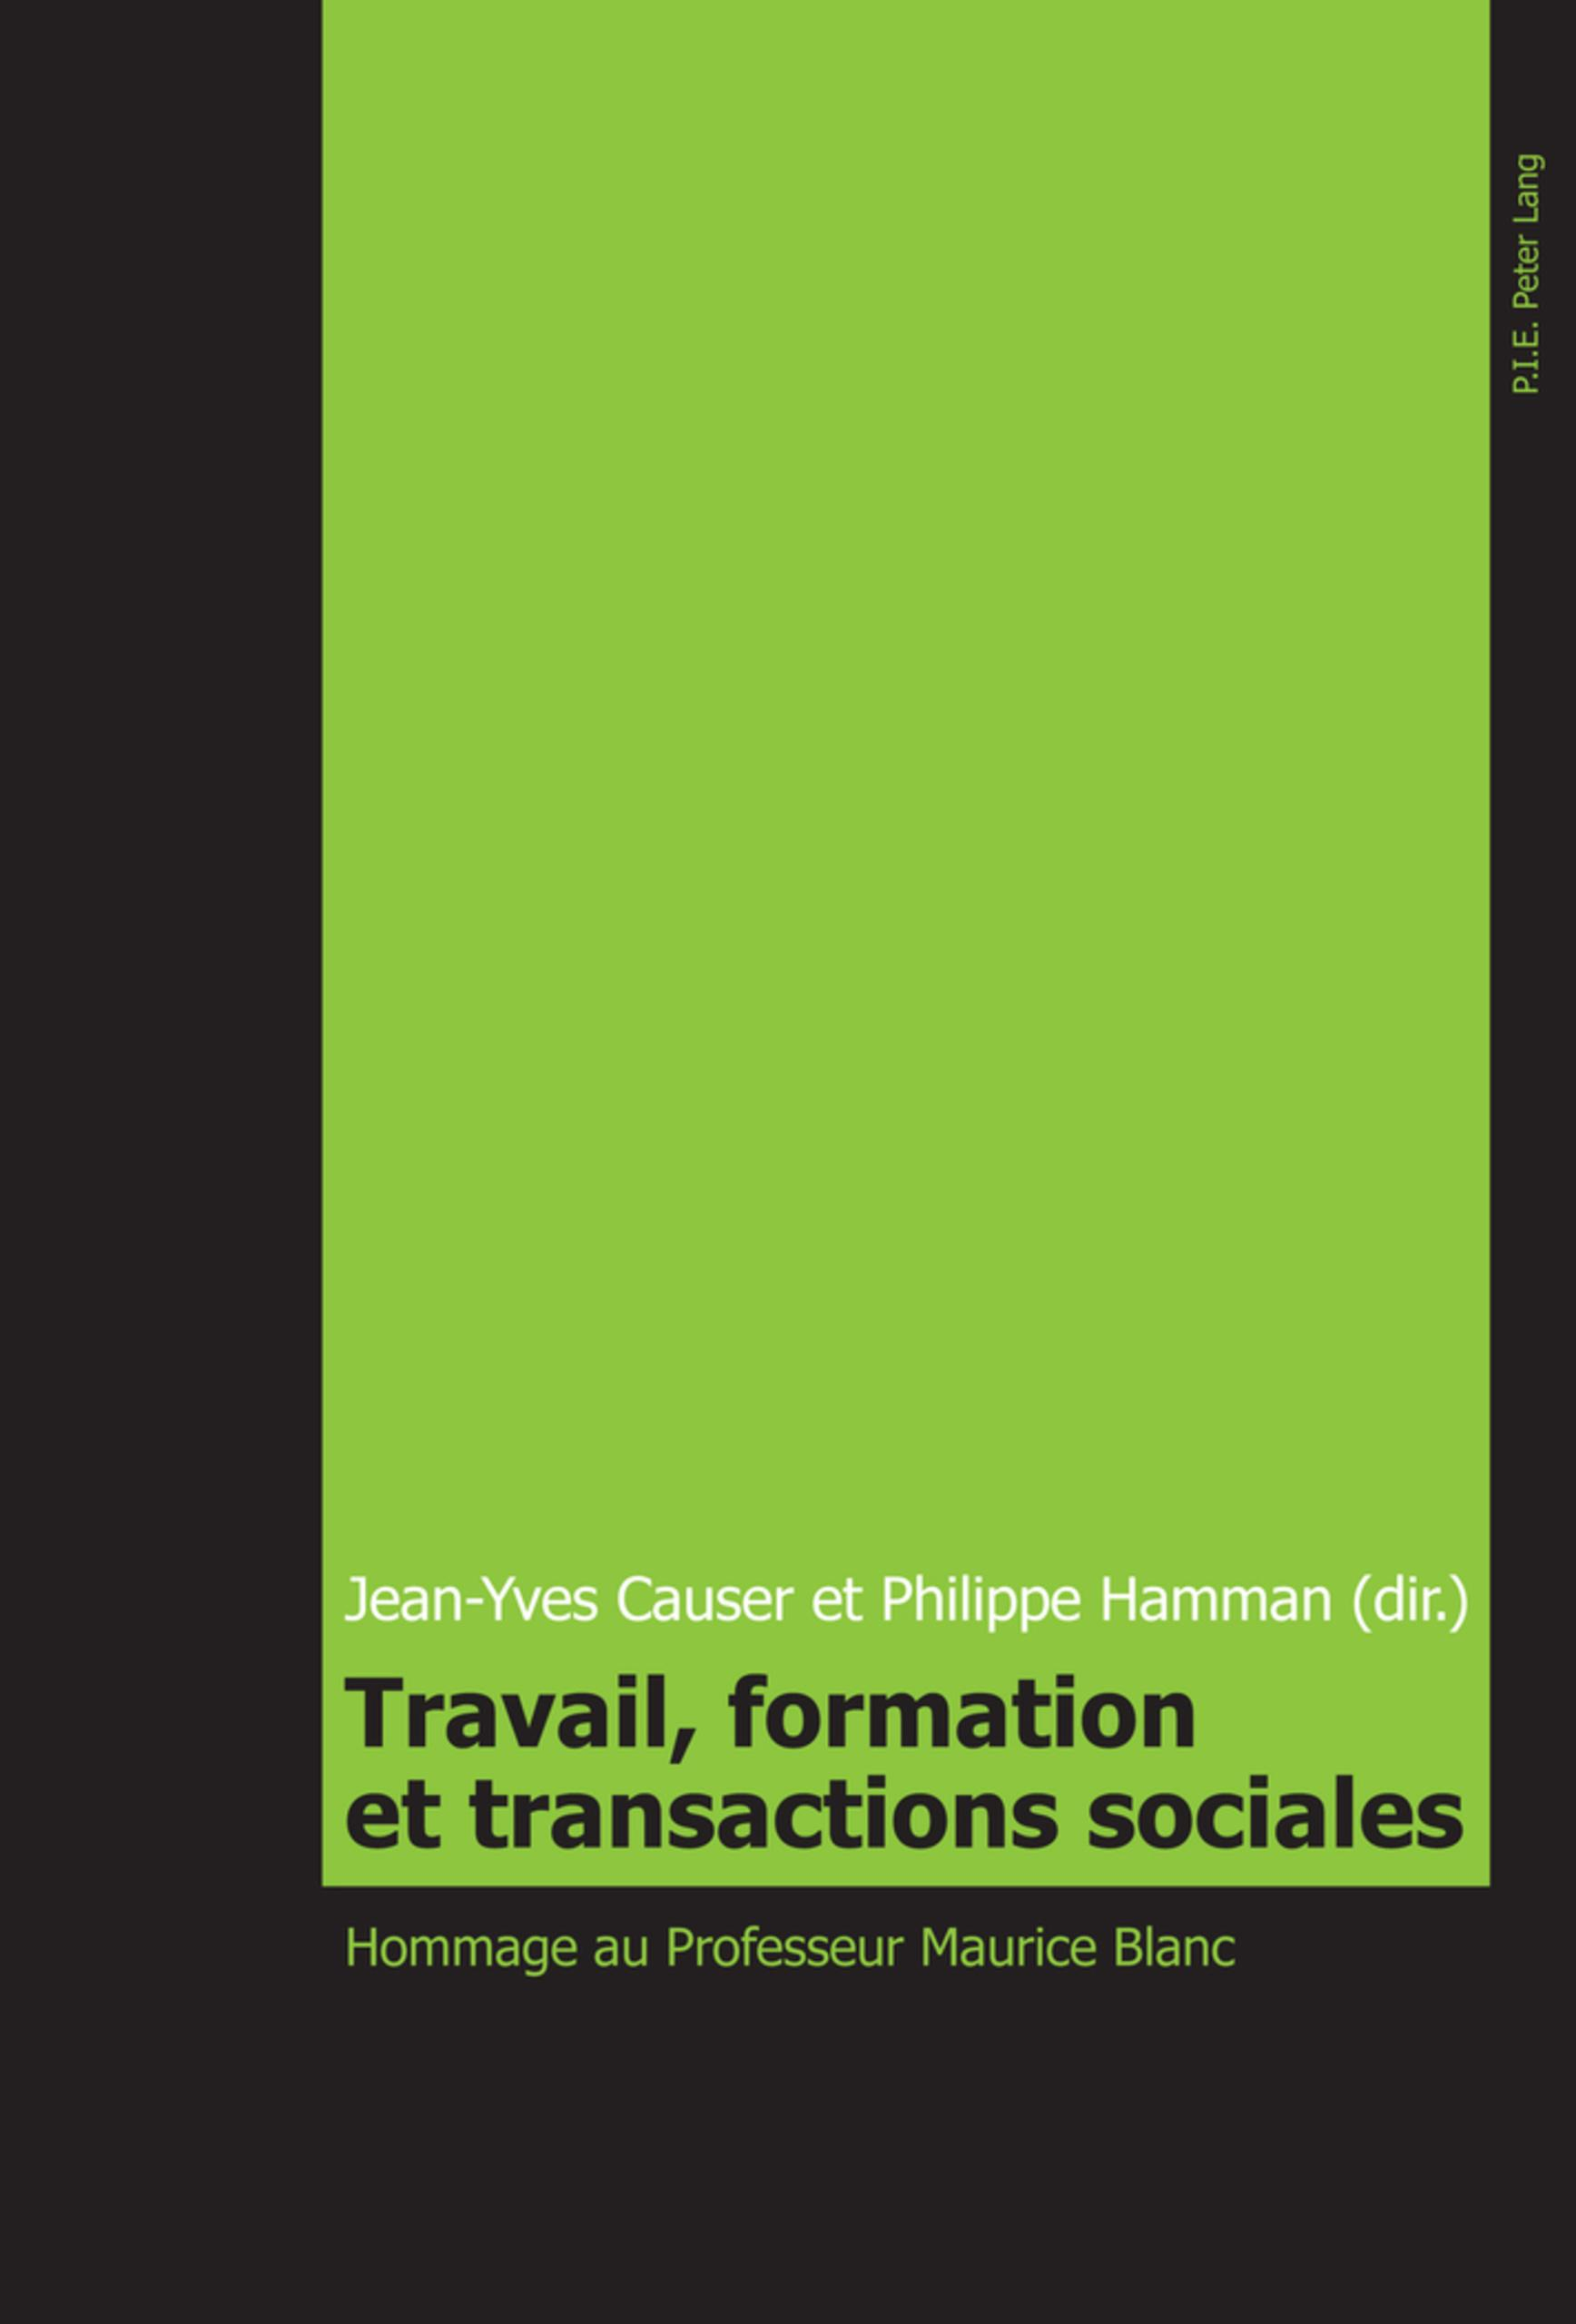 Travail, formation et transactions sociales - Jean-Yves Caus ... 9789052016764